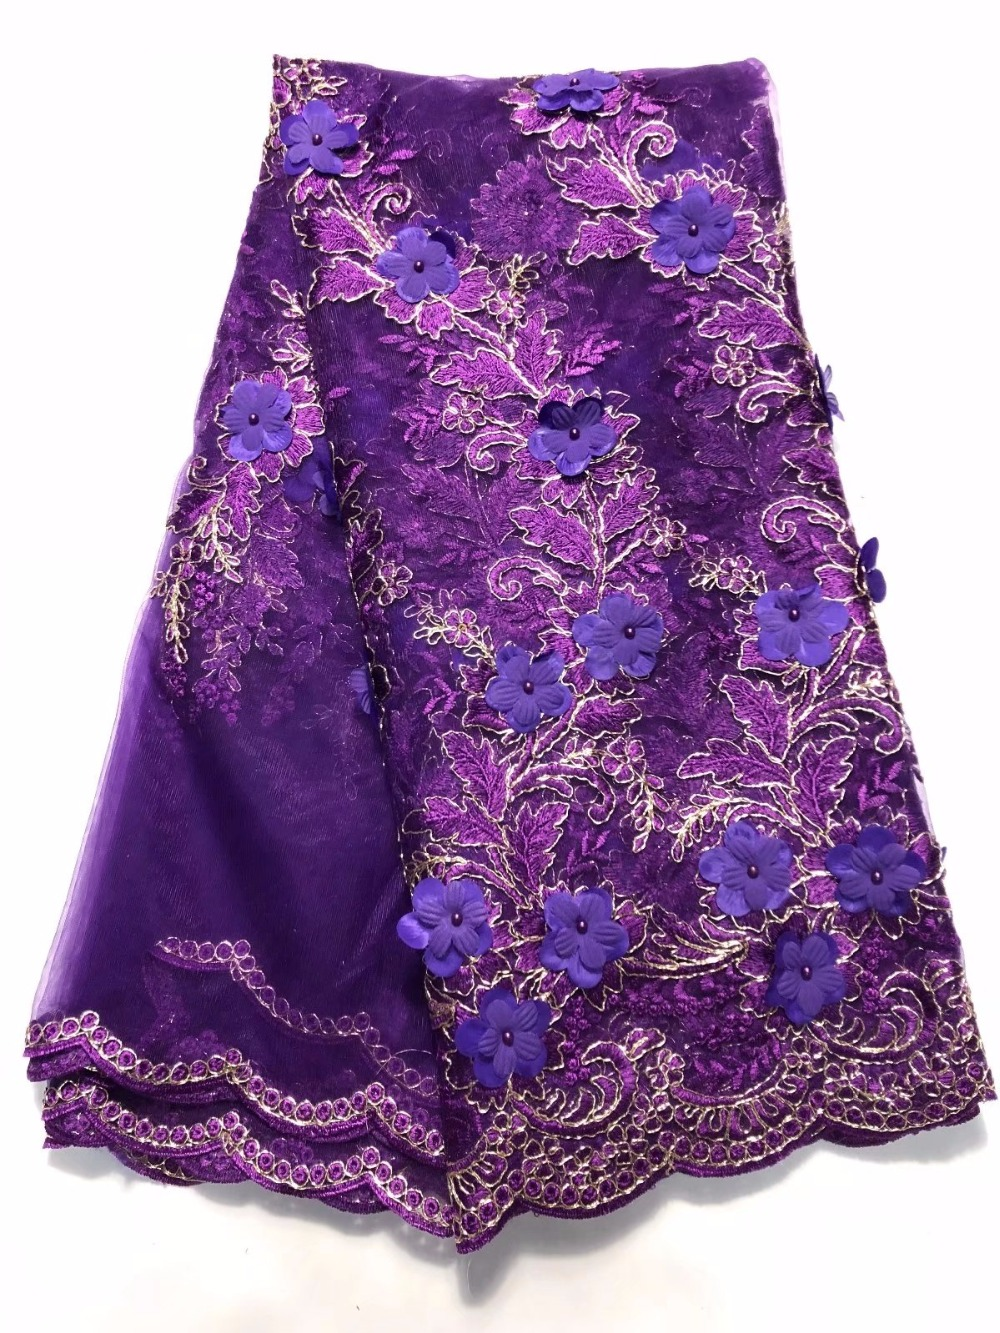 purple african lace french lace fabric with beads and stones 2018 high quality tulle lace for women dresses 5yard